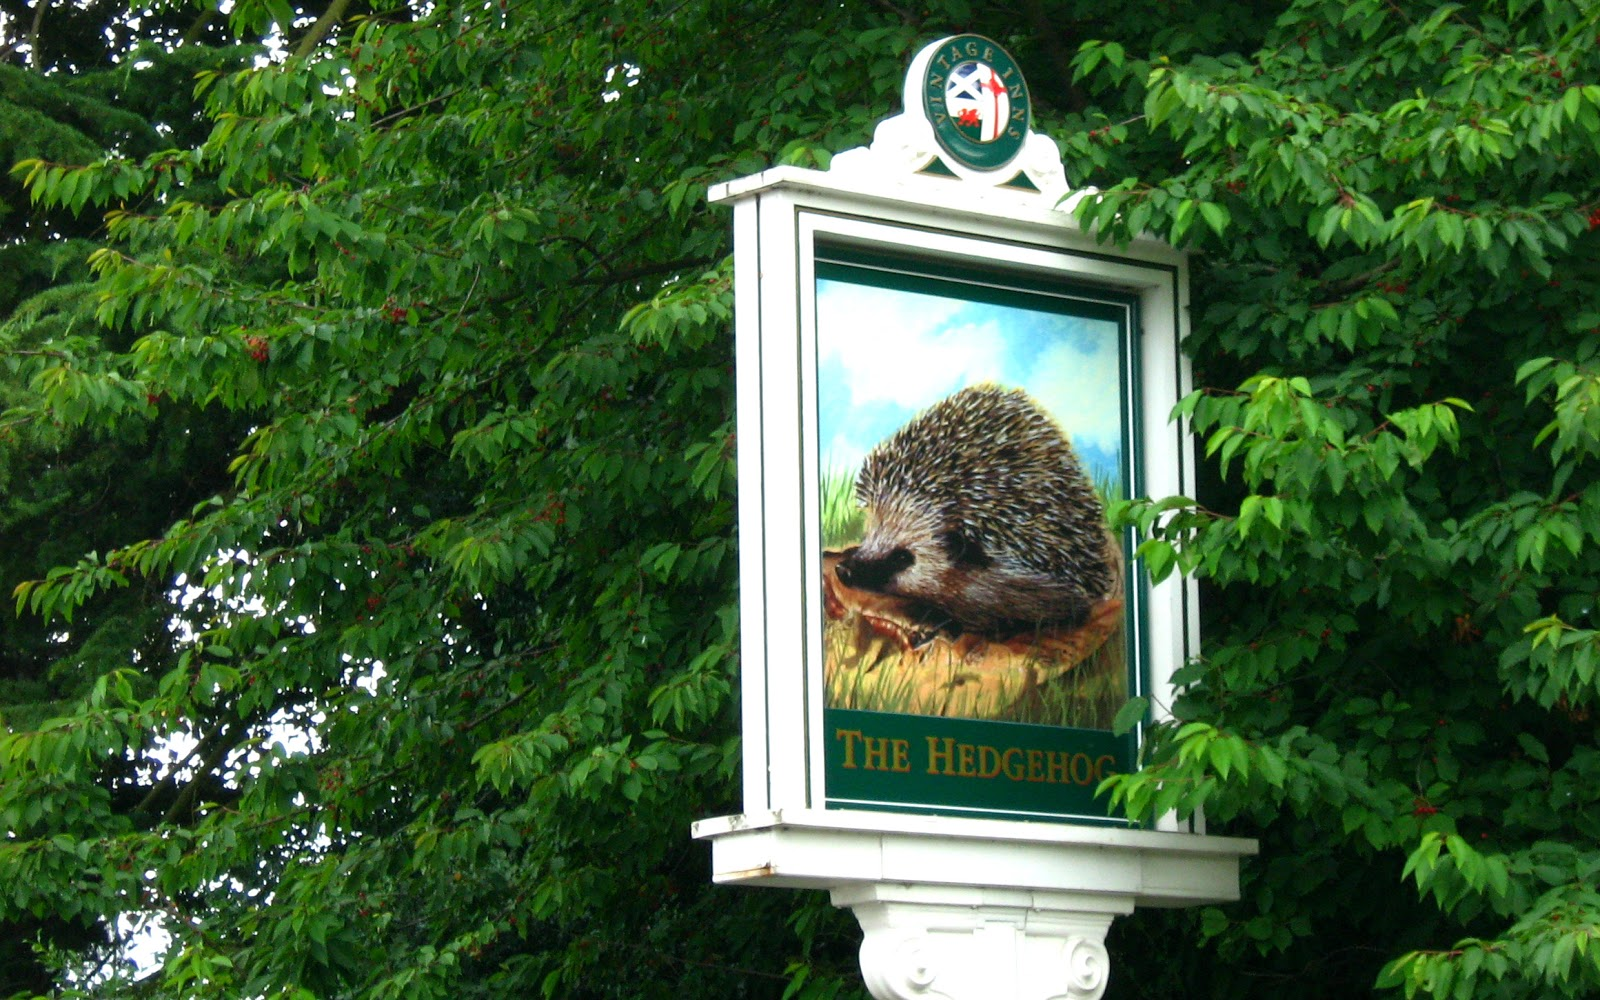 Hedgehog Pub sign